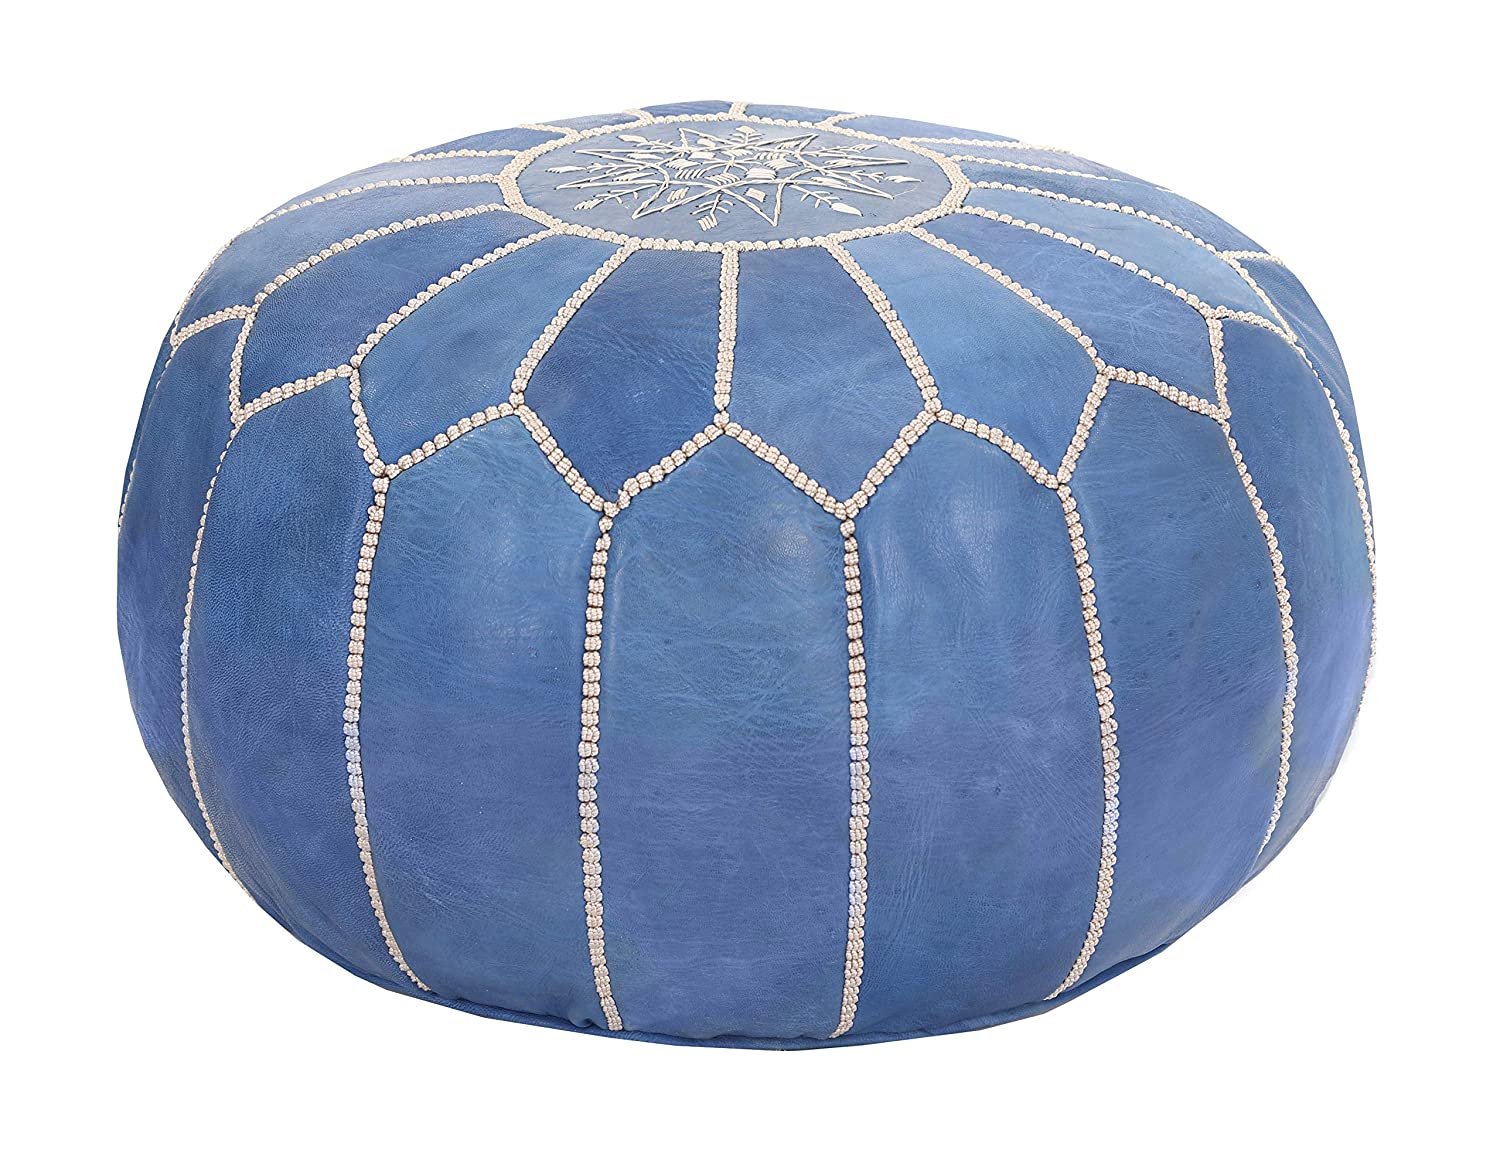 Premium Handmade Leather Moroccan Cover Gifts Ottoman 2021 Footstool - Pouf